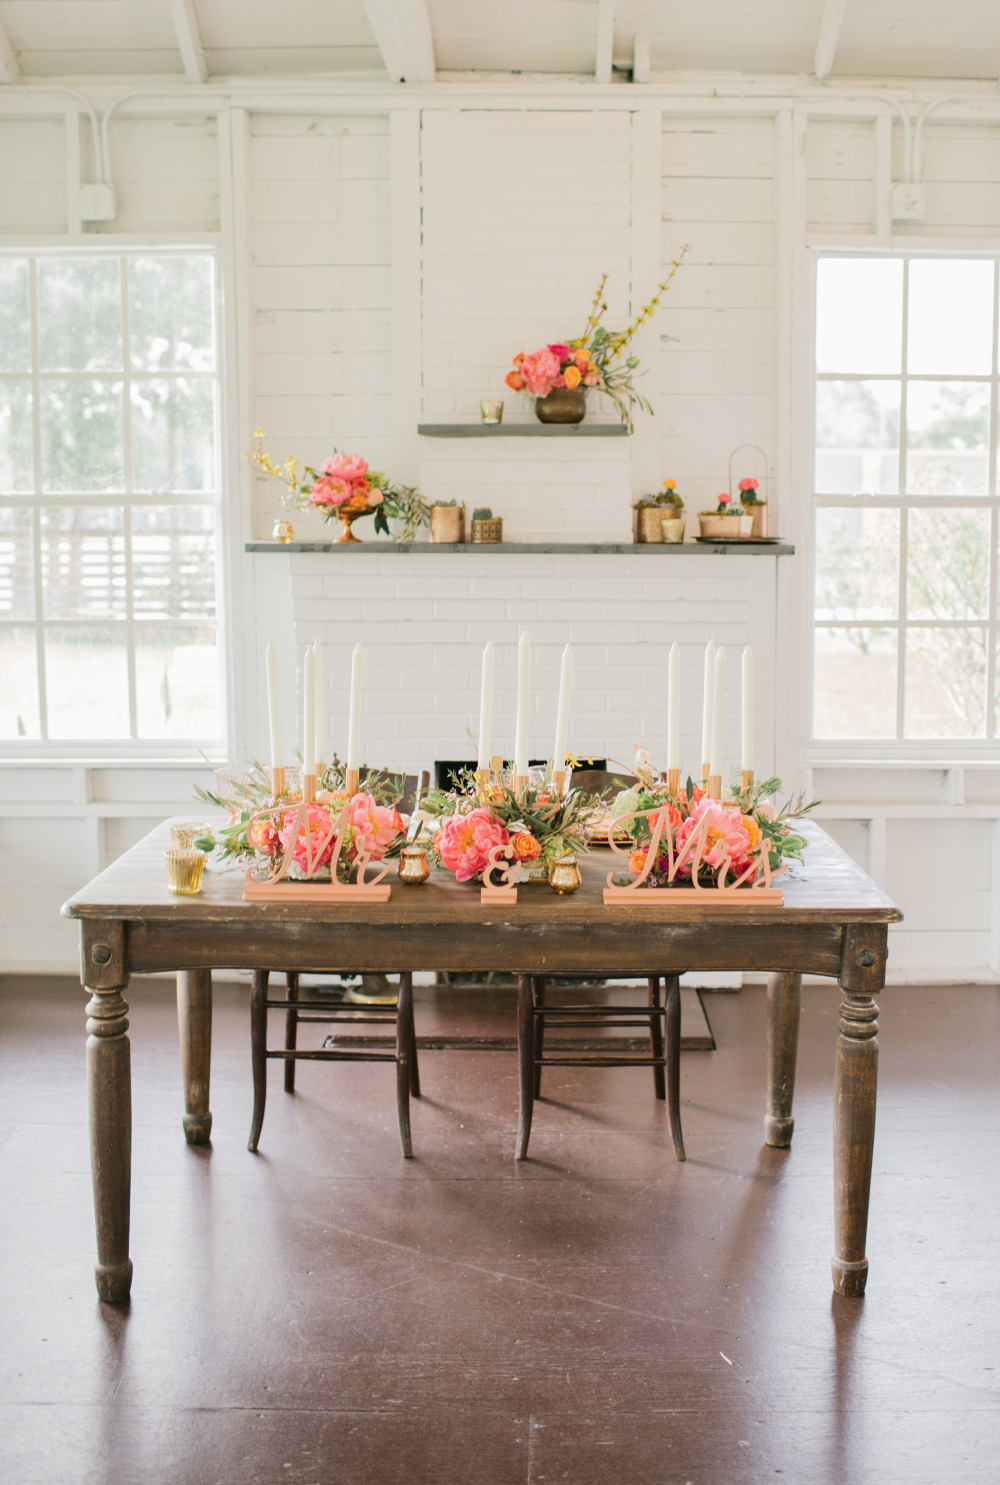 sweetheart table styled with pink peonies